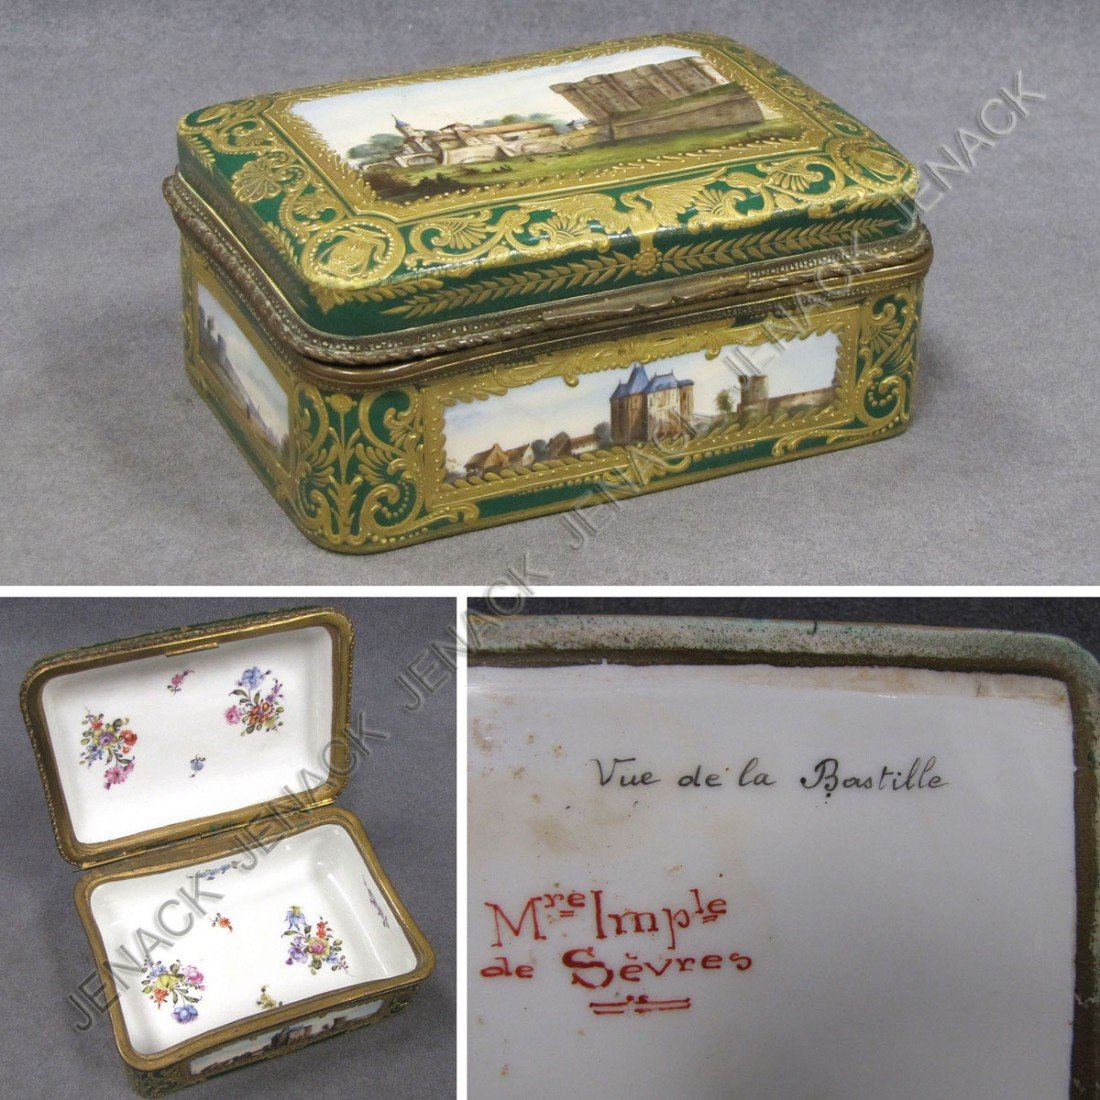 2: SEVRES GILT DECORATED PORCELAIN COVERED BOX